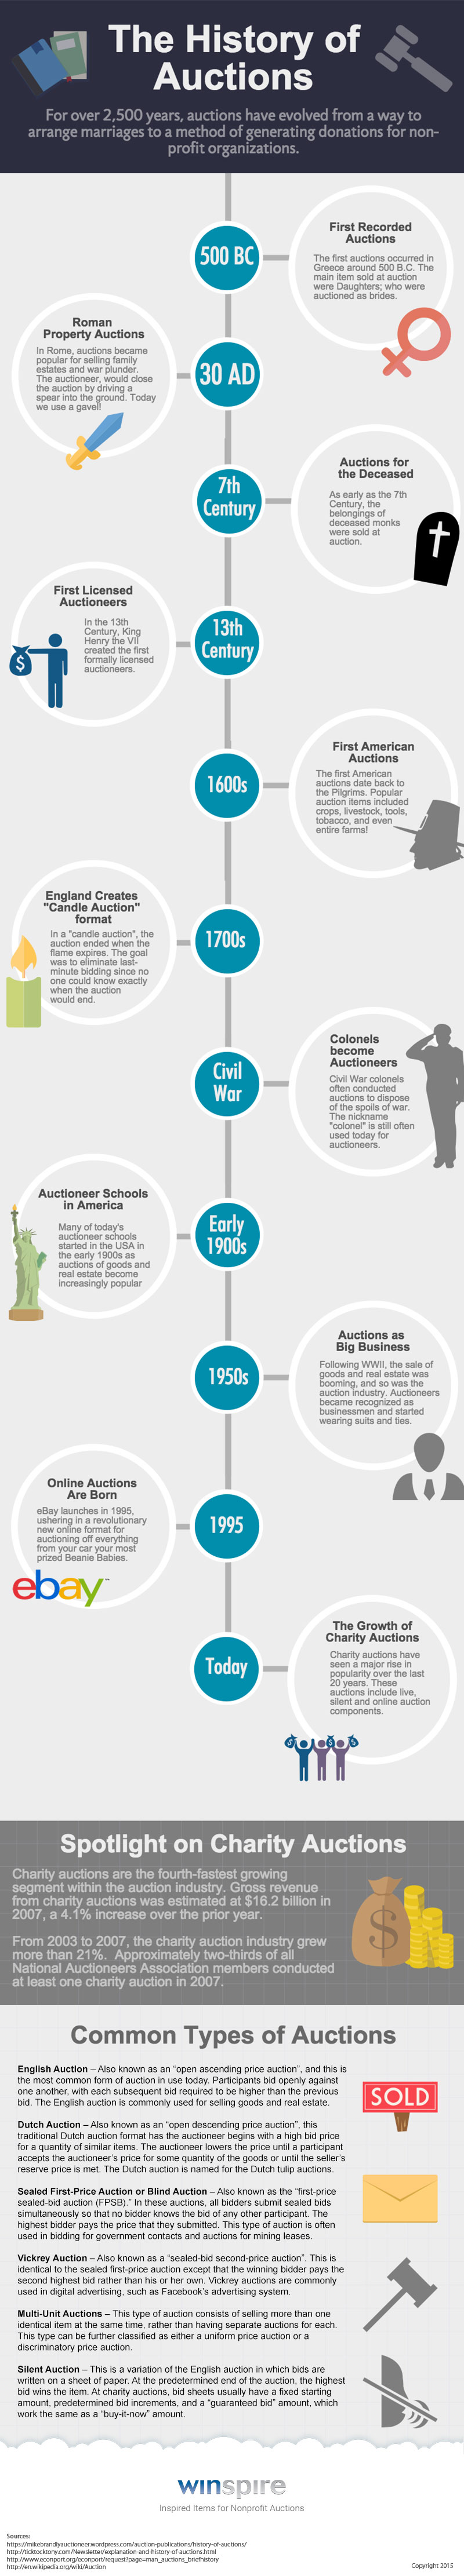 winspire-history-of-auctions-infographic-2